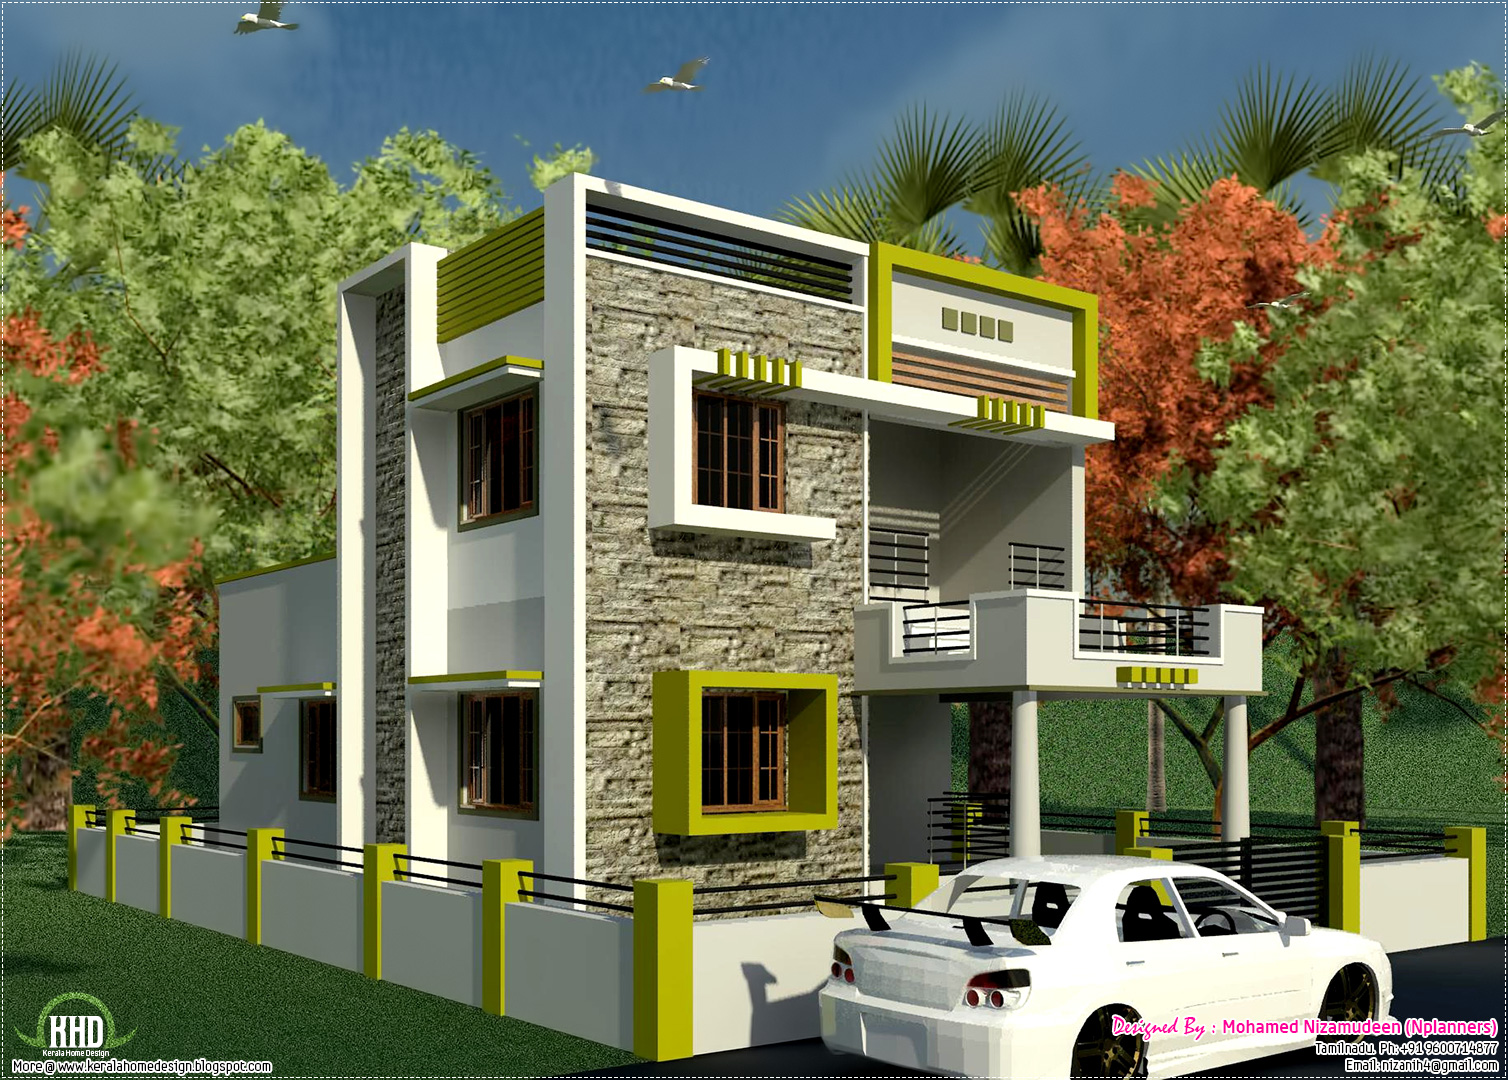 South indian style new modern 1460 sq feet house design for House structure design in india